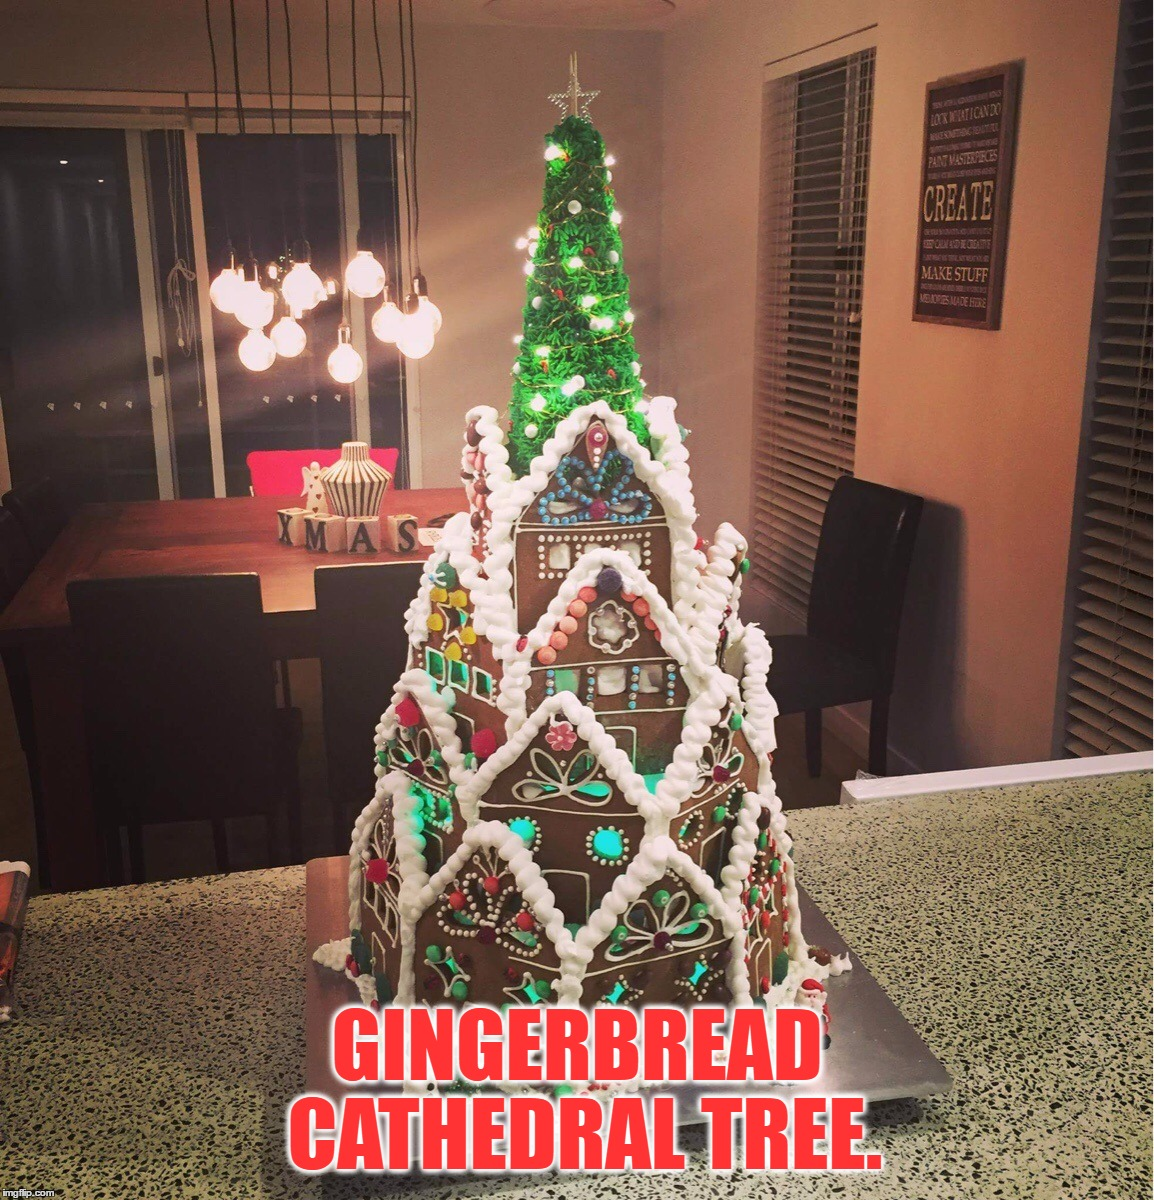 Anyone A Fan Of Gingerbread? 8 Days Left Until Christmas... | GINGERBREAD CATHEDRAL TREE. | image tagged in memes,christmas,christmas tree,cathedral,gingerbread,awesome | made w/ Imgflip meme maker